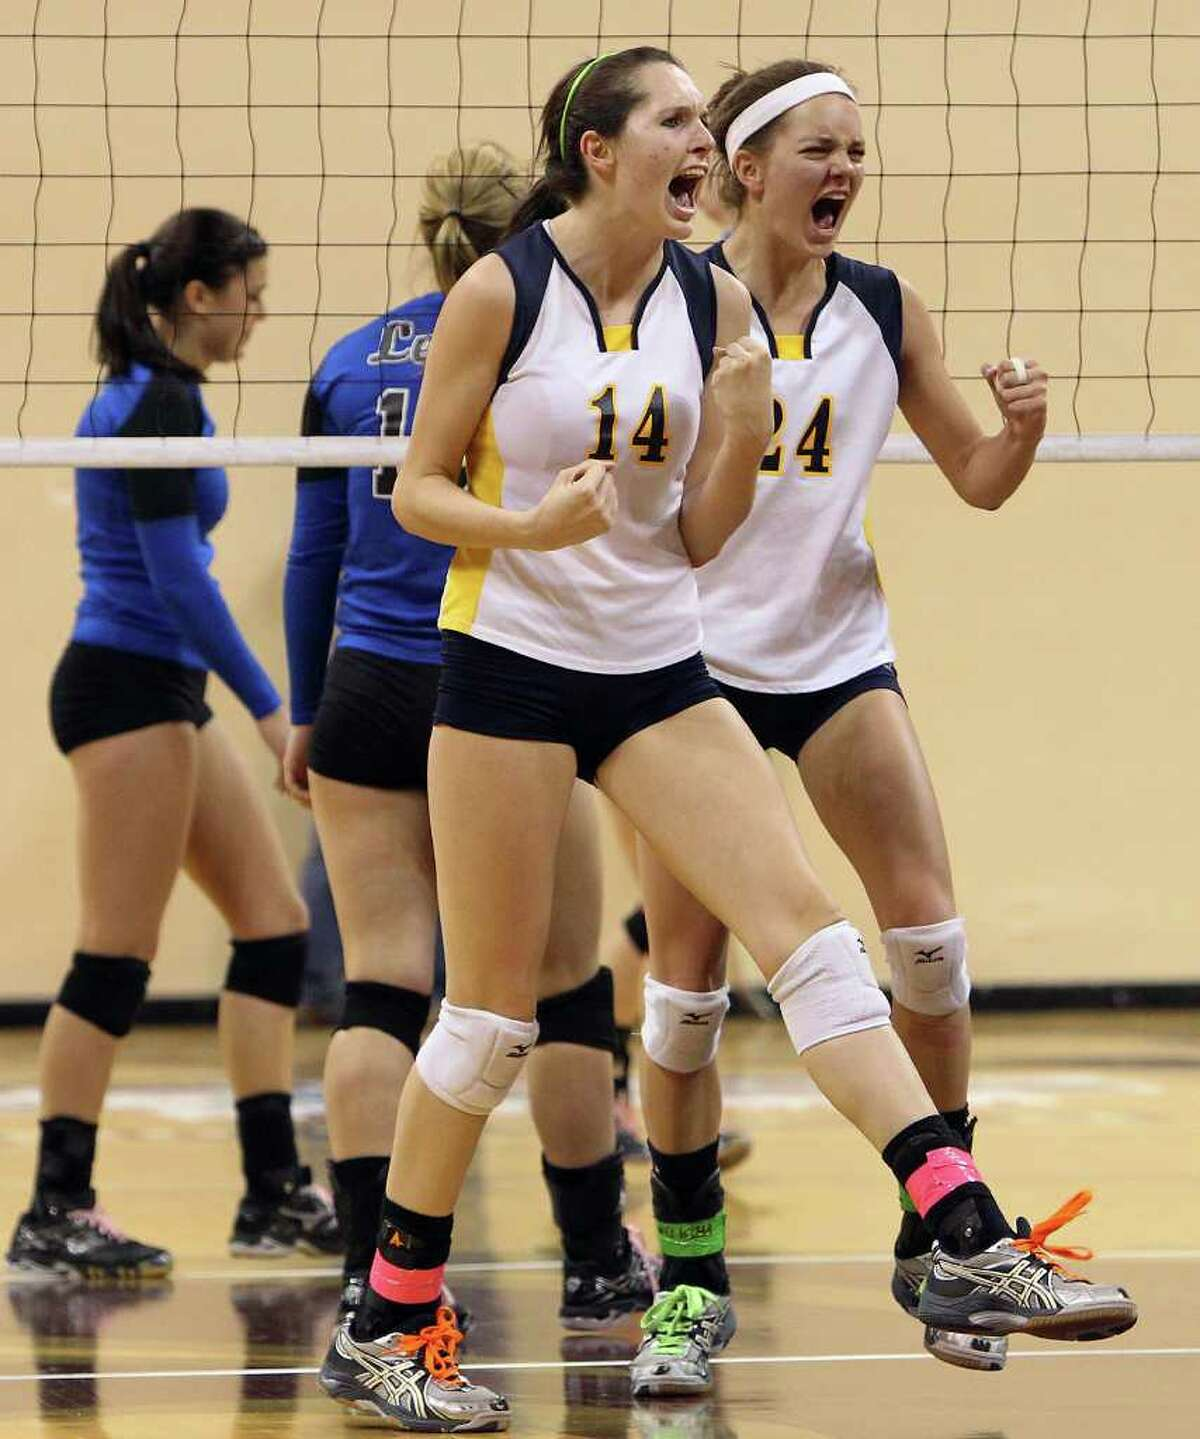 Poth's Kelsee Felux (14) and Micah Weaver (24) react after scoring against Jewett Leon in 2A State semifinal volleyball in Strahan Coliseum at Texas State University in San Marcos on Thursday, Nov. 17, 2011. Poth defeated Leon in four games to move onto the state finals to be played on Saturday.